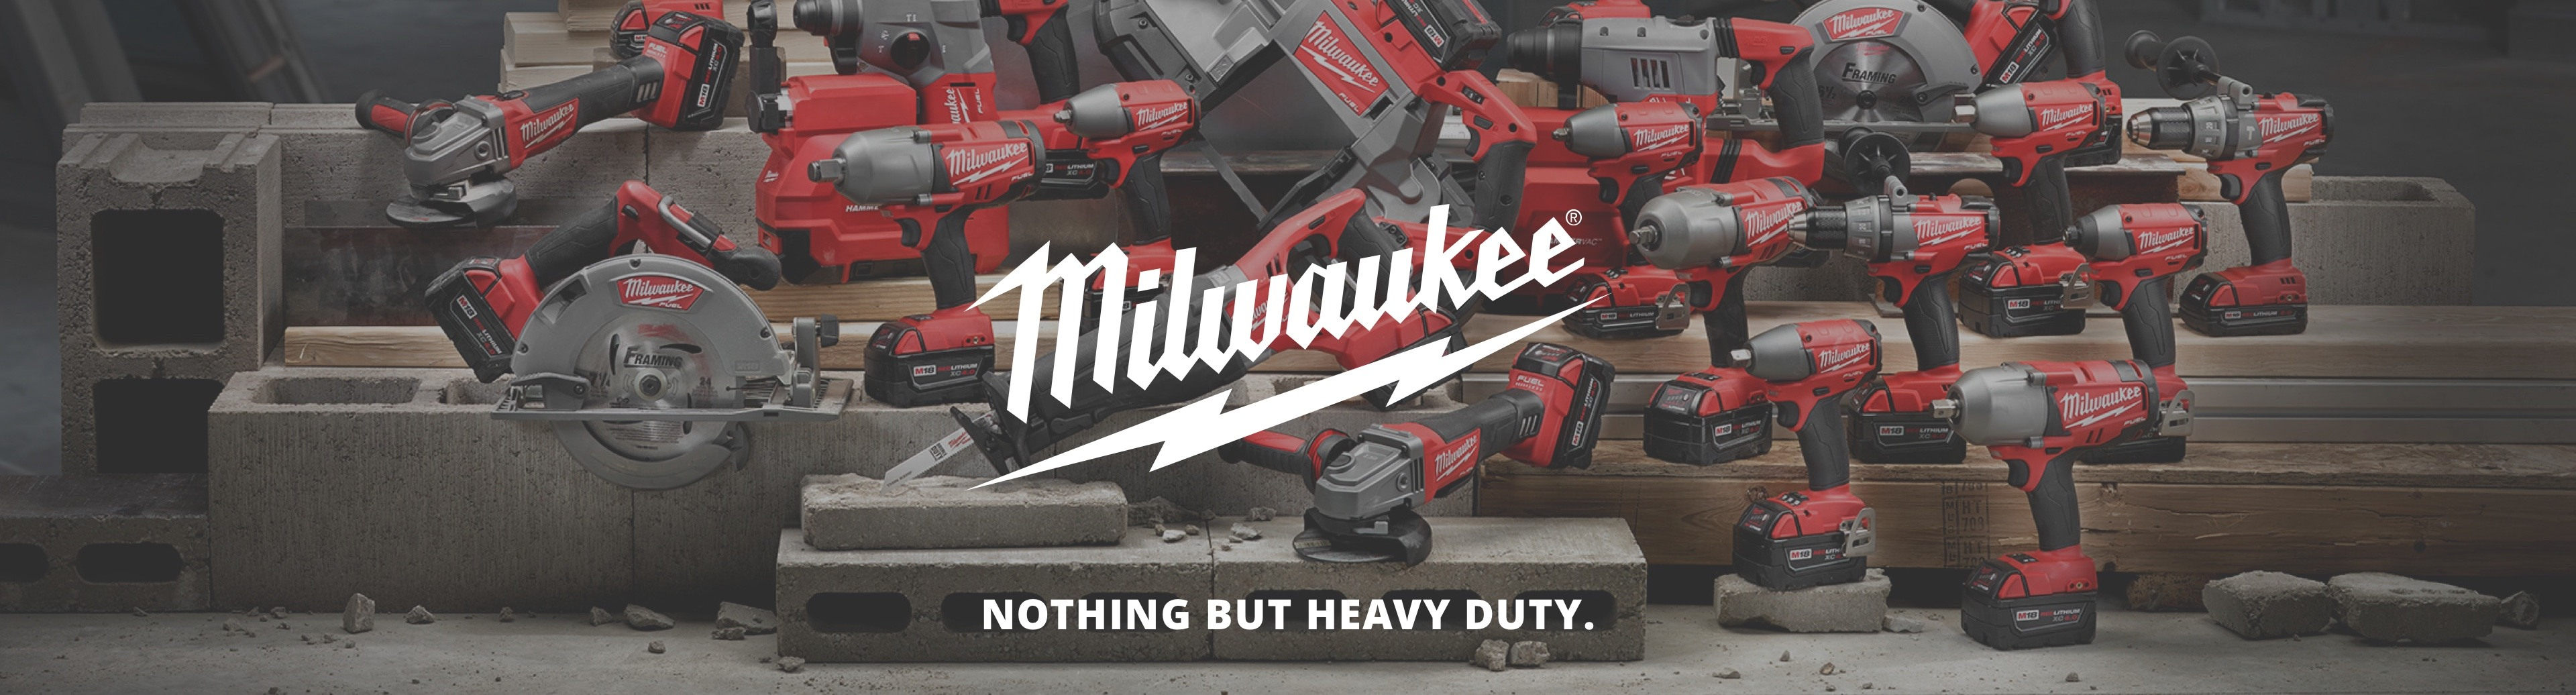 Learn more about Milwaukee tools here.